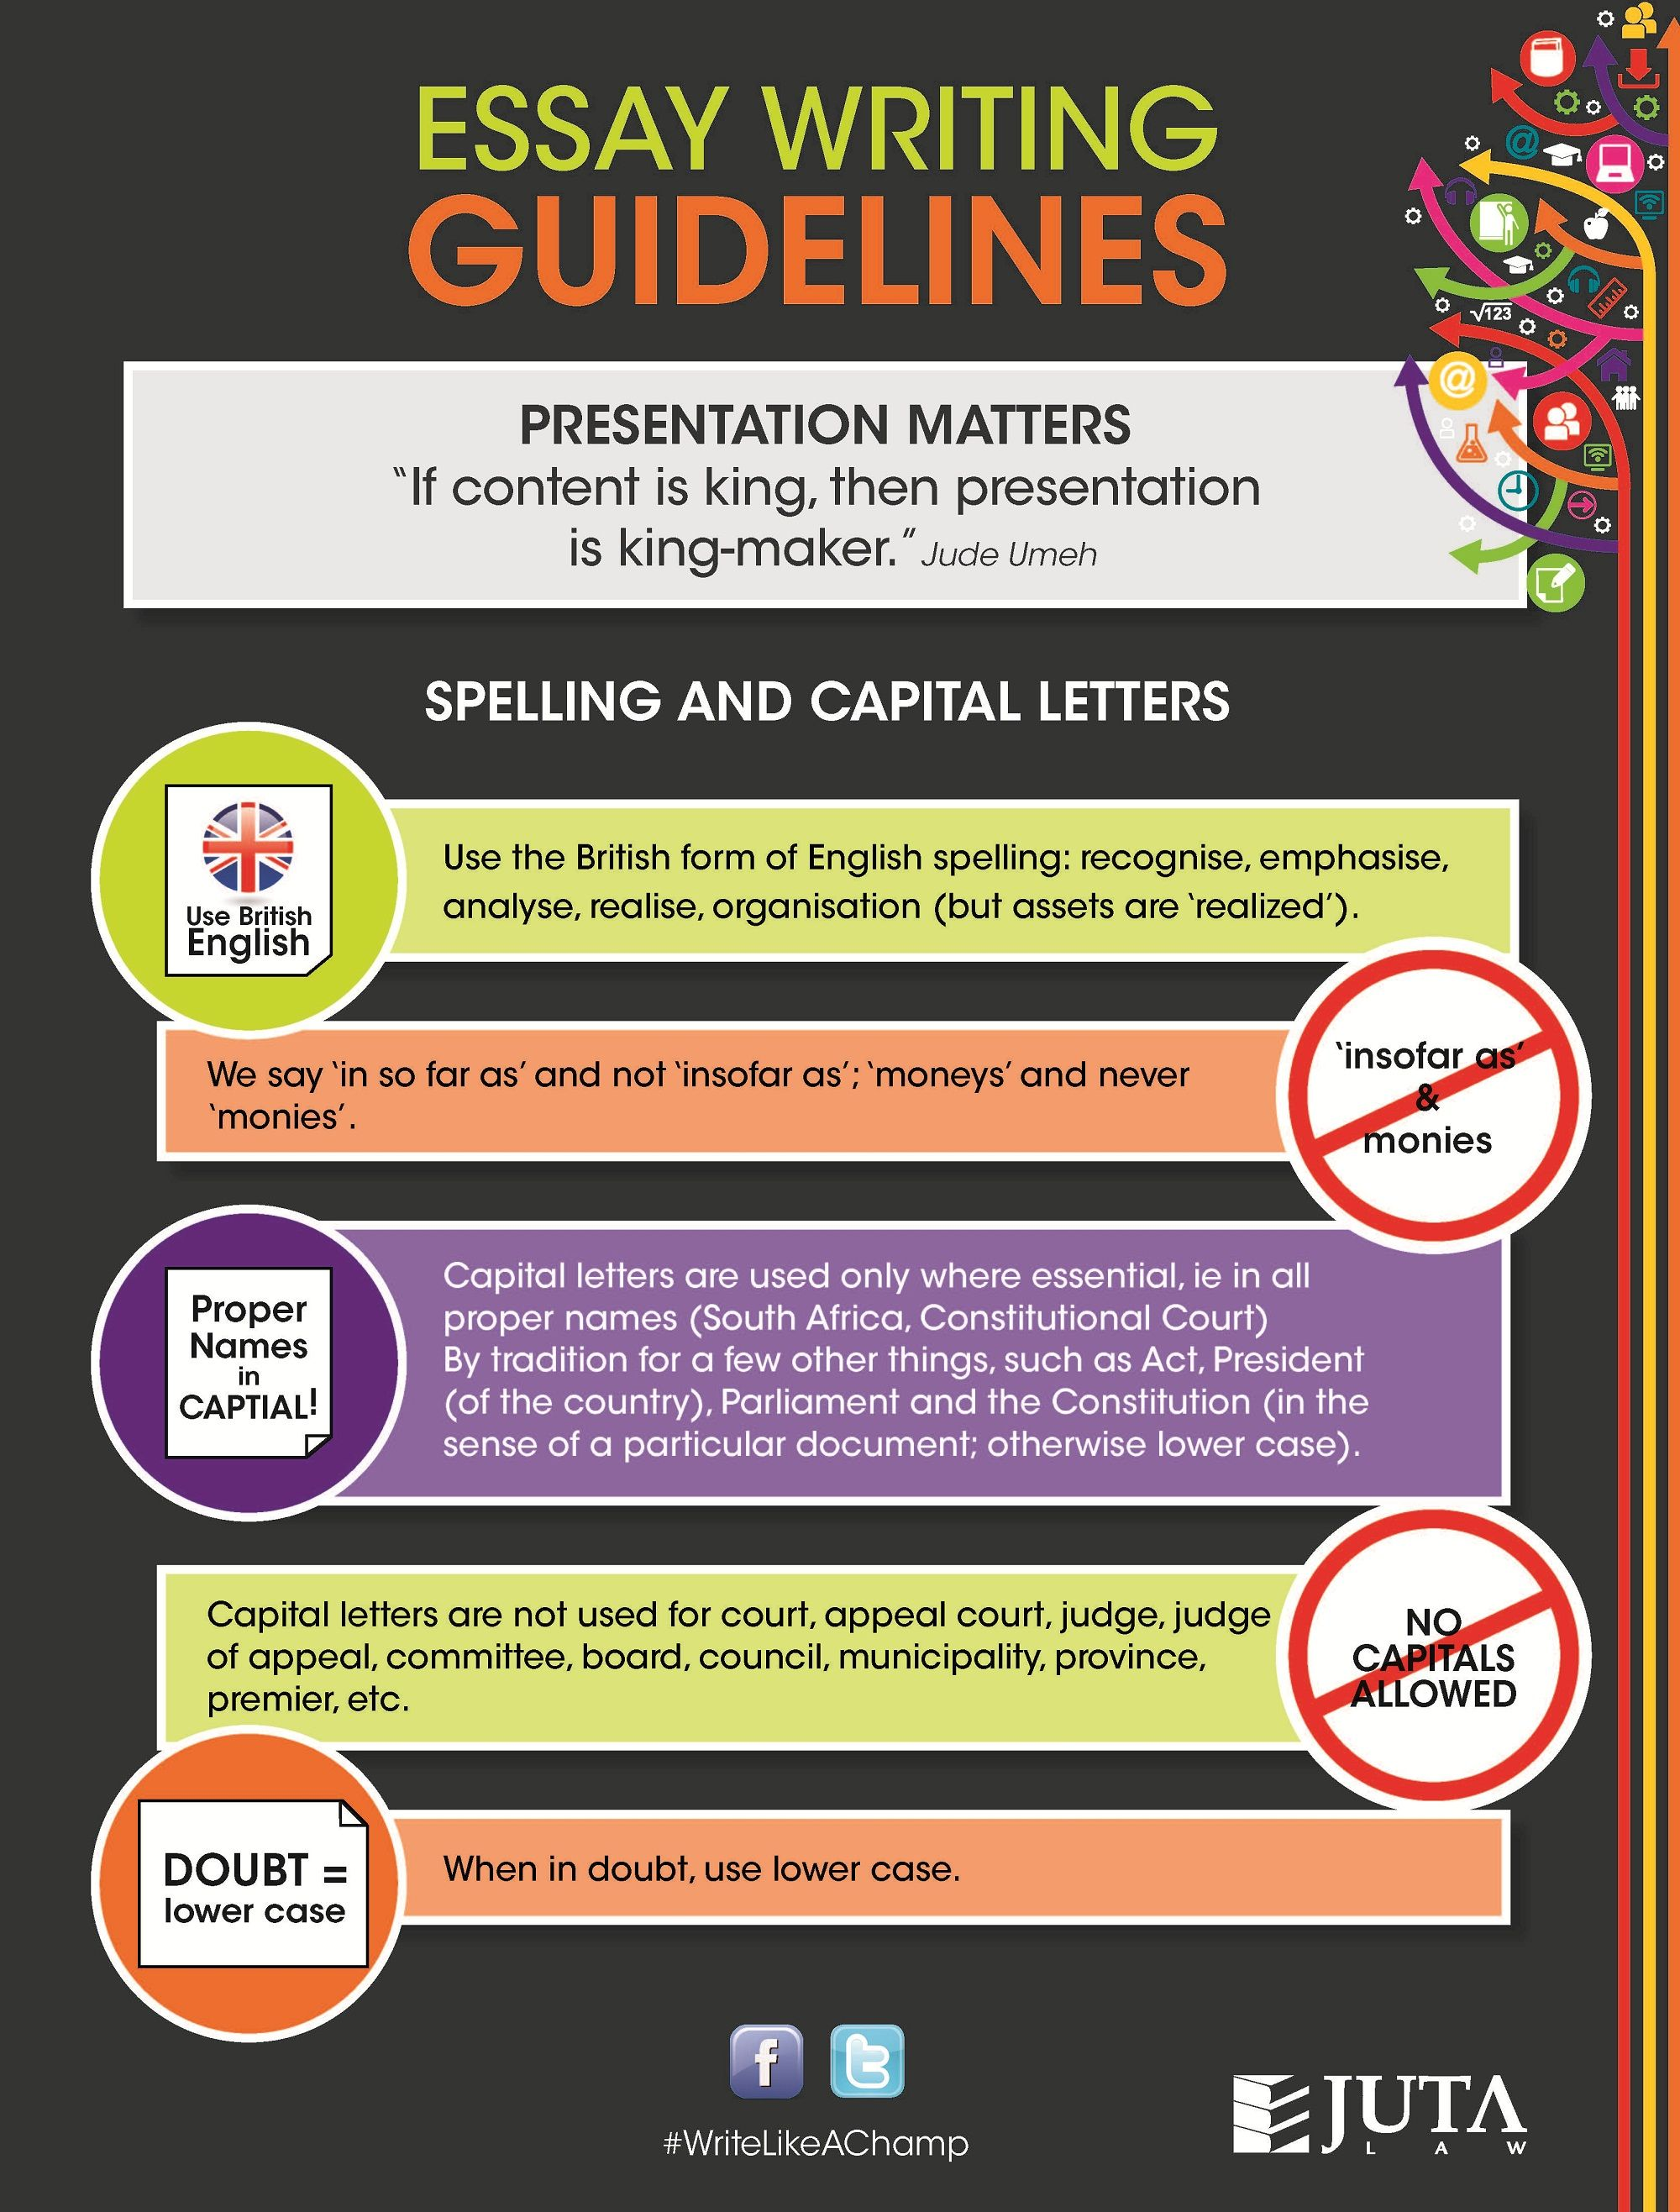 Infographic on spelling and capital letters guidelines